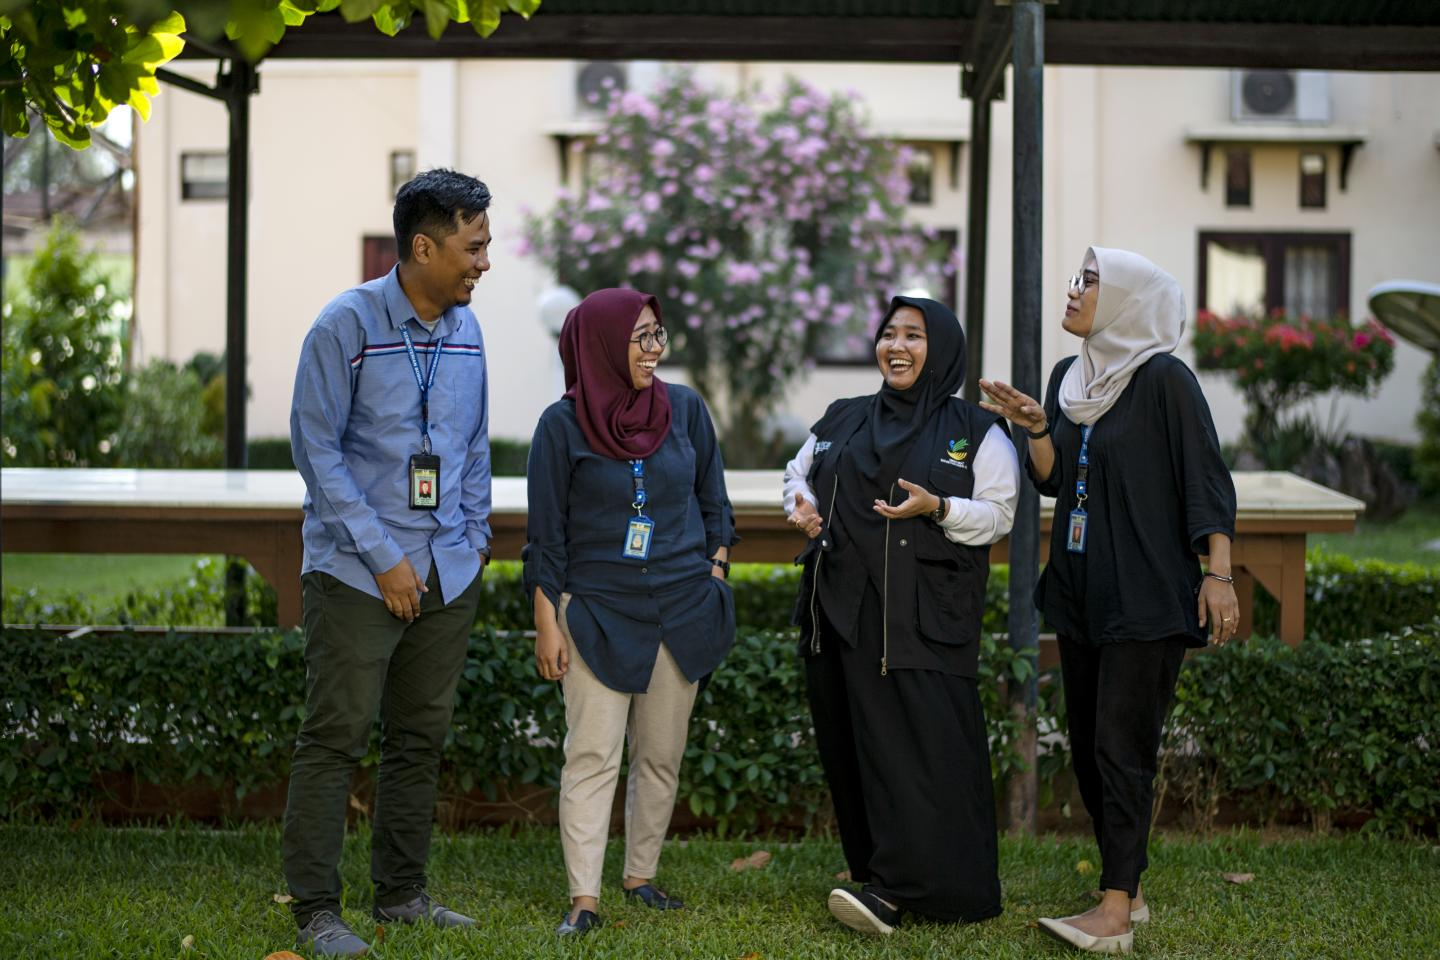 Robby Saputra (33), Ramadhani Sri Handayani (32), Nurfanny (30), and Triyana Sari (30) pose in front of the camera in the park in the Social Office office area in Palu, Central Sulawesi, Indonesia, on 11 September 2019.